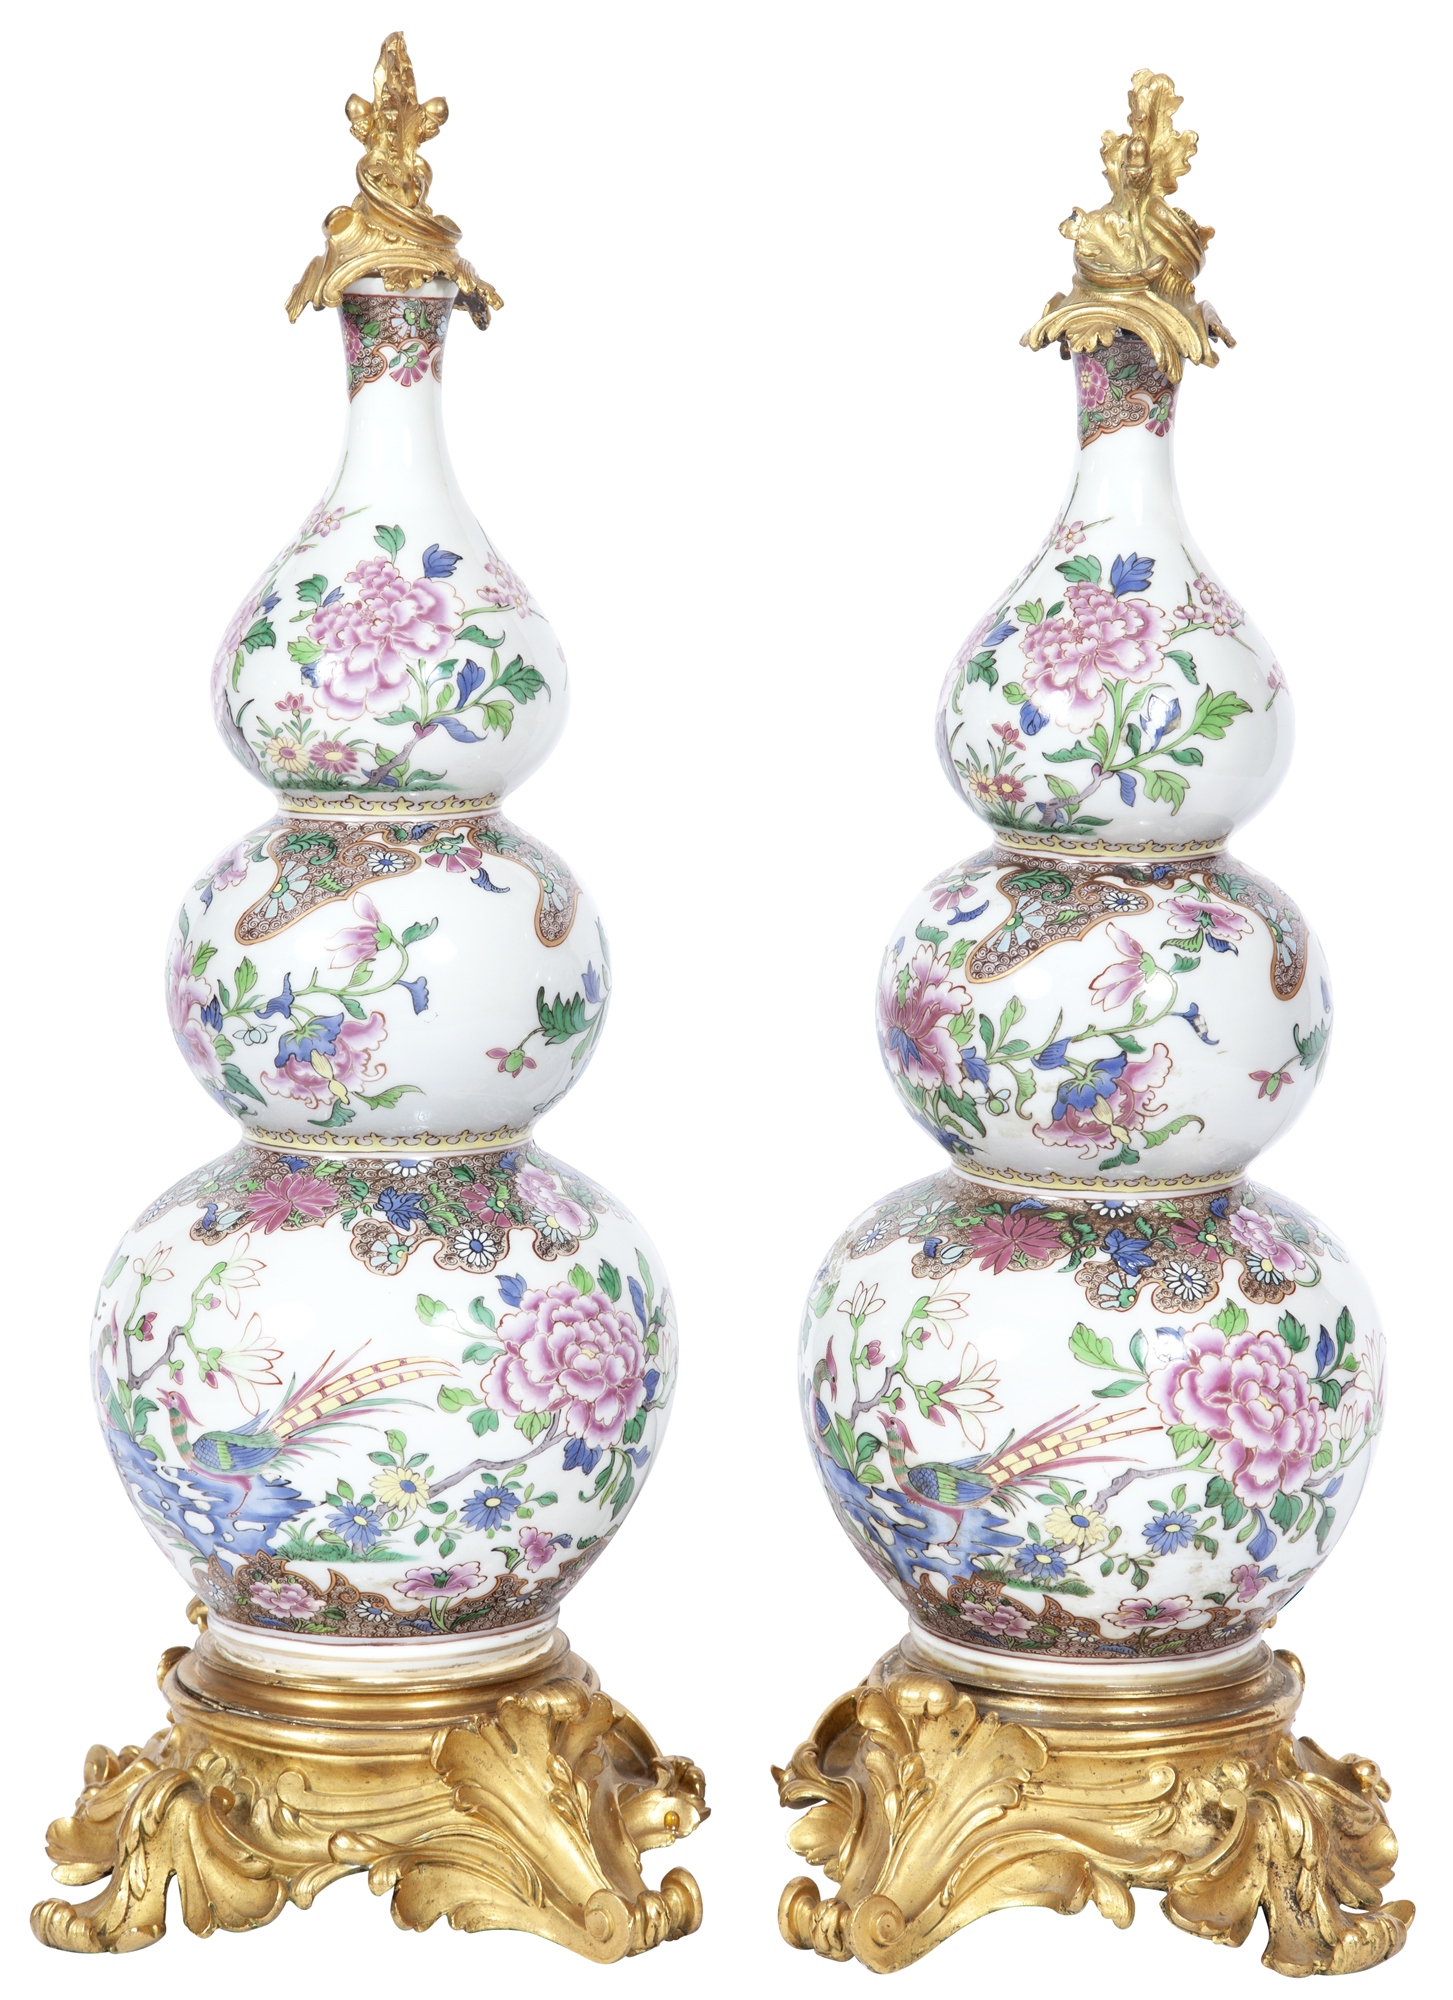 Lot image - Pair of Louis XV Style Gilt-Bronze Mounted Famille Rose Style Porcelain Triple Gourd Vases